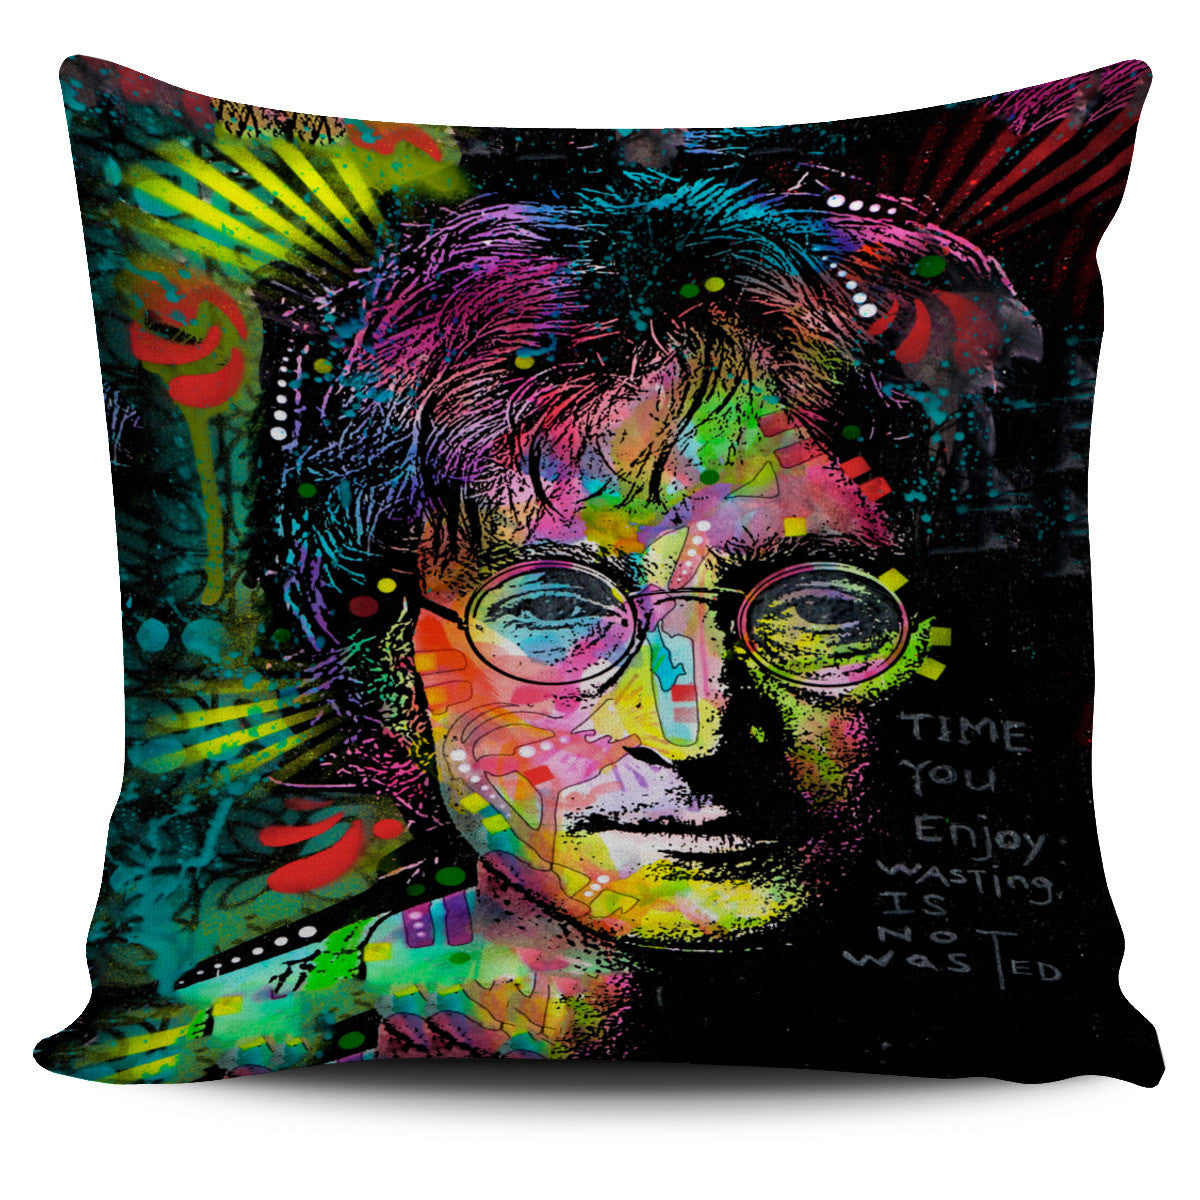 Beatles Series Pillow Covers Offer